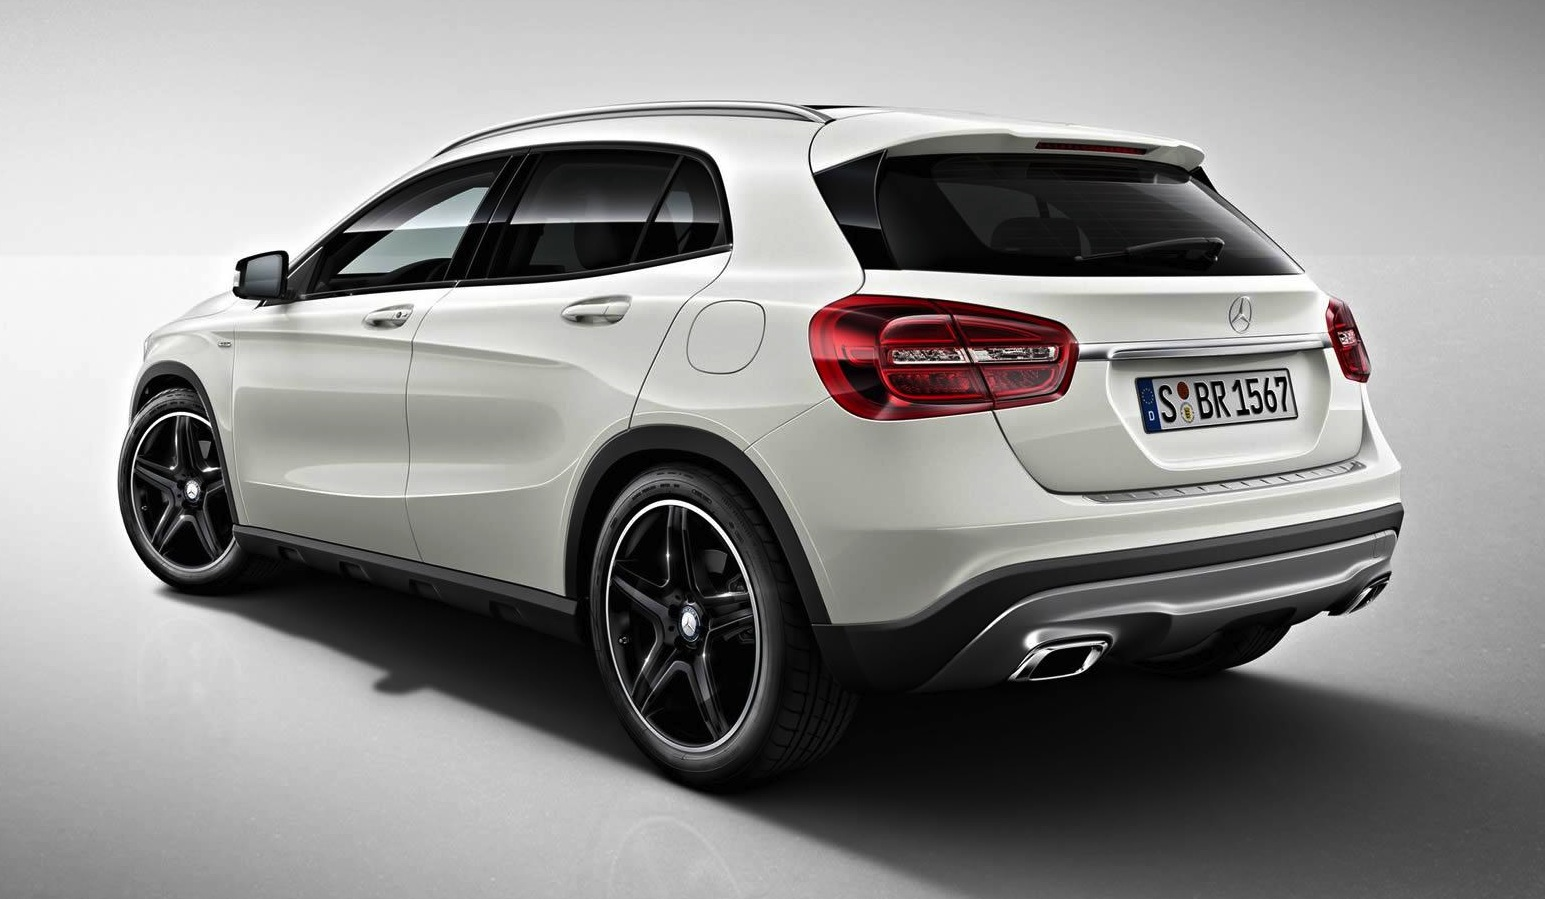 mercedes benz gla edition 1 limited edition compact suv revealed photos 1 of 7. Black Bedroom Furniture Sets. Home Design Ideas